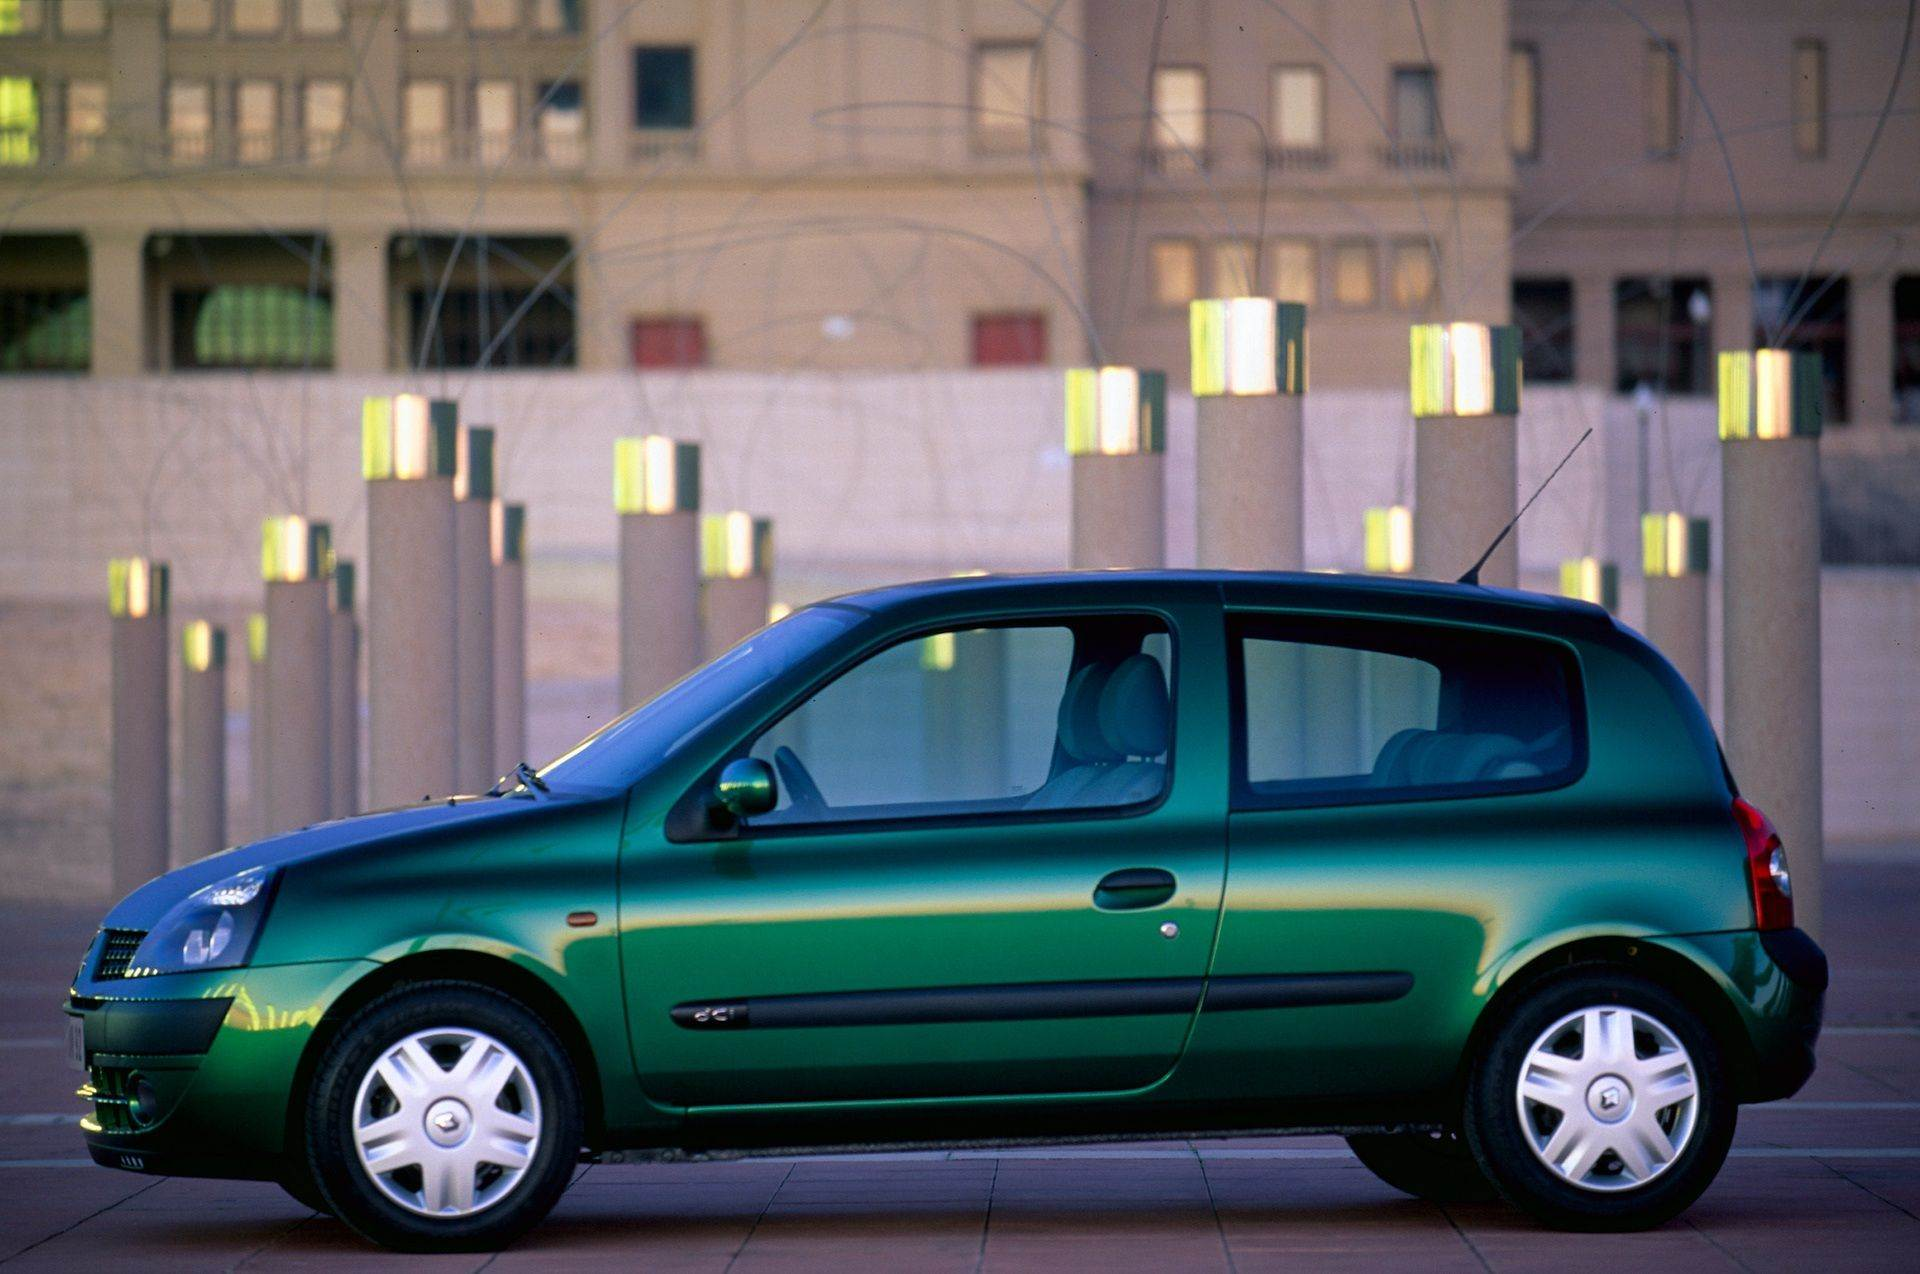 2020-30-years-of-Renault-CLIO-Renault-CLIO-2-1998-2005-7